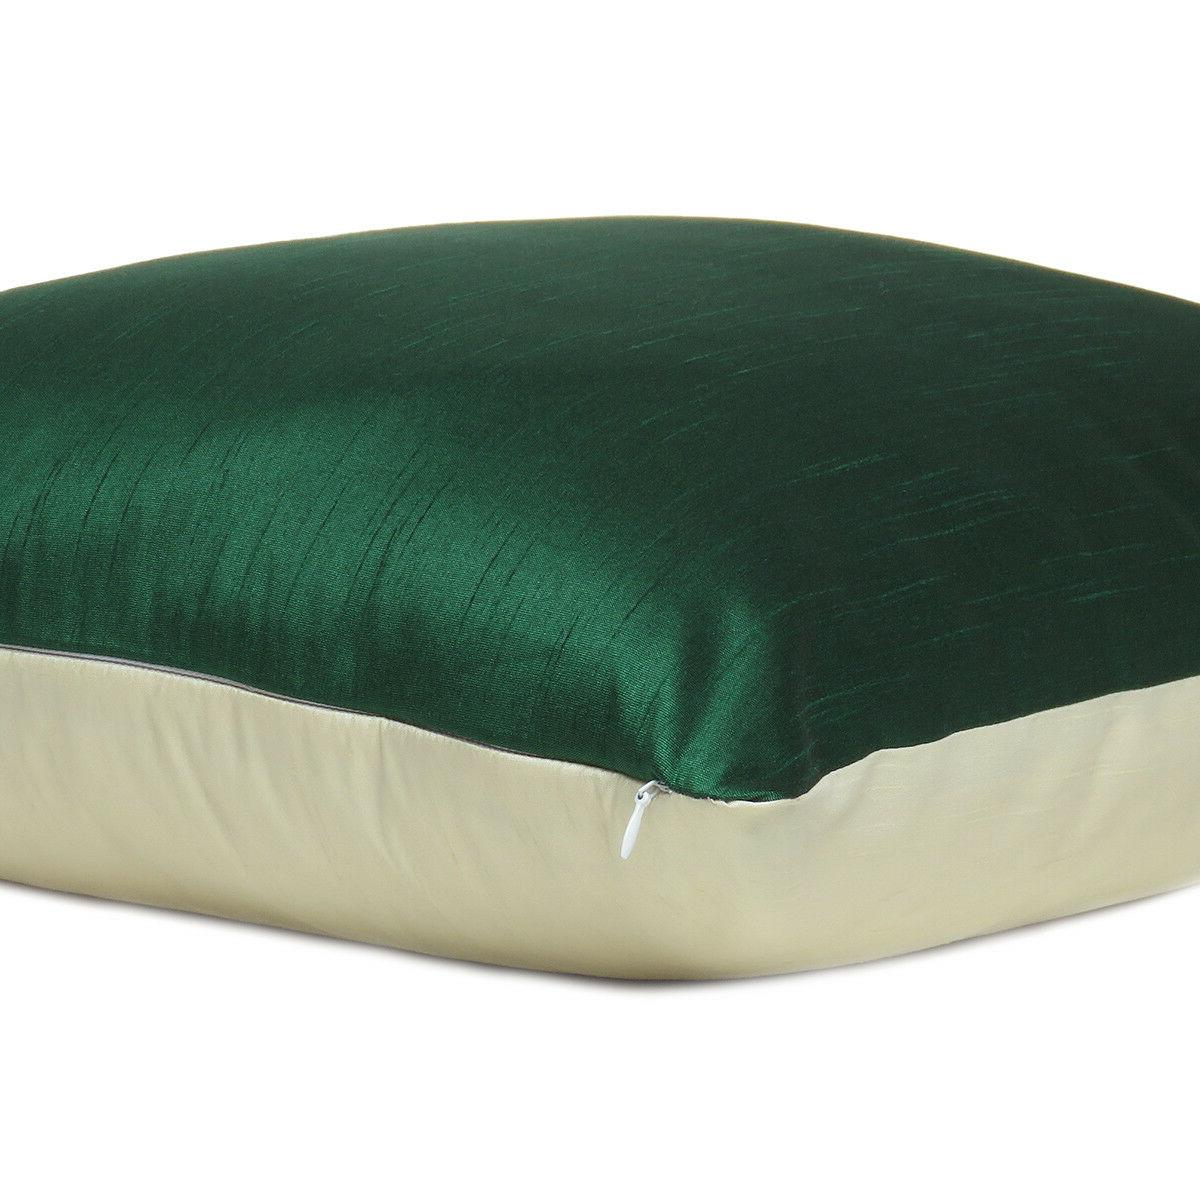 Green Off White Cover Cushion